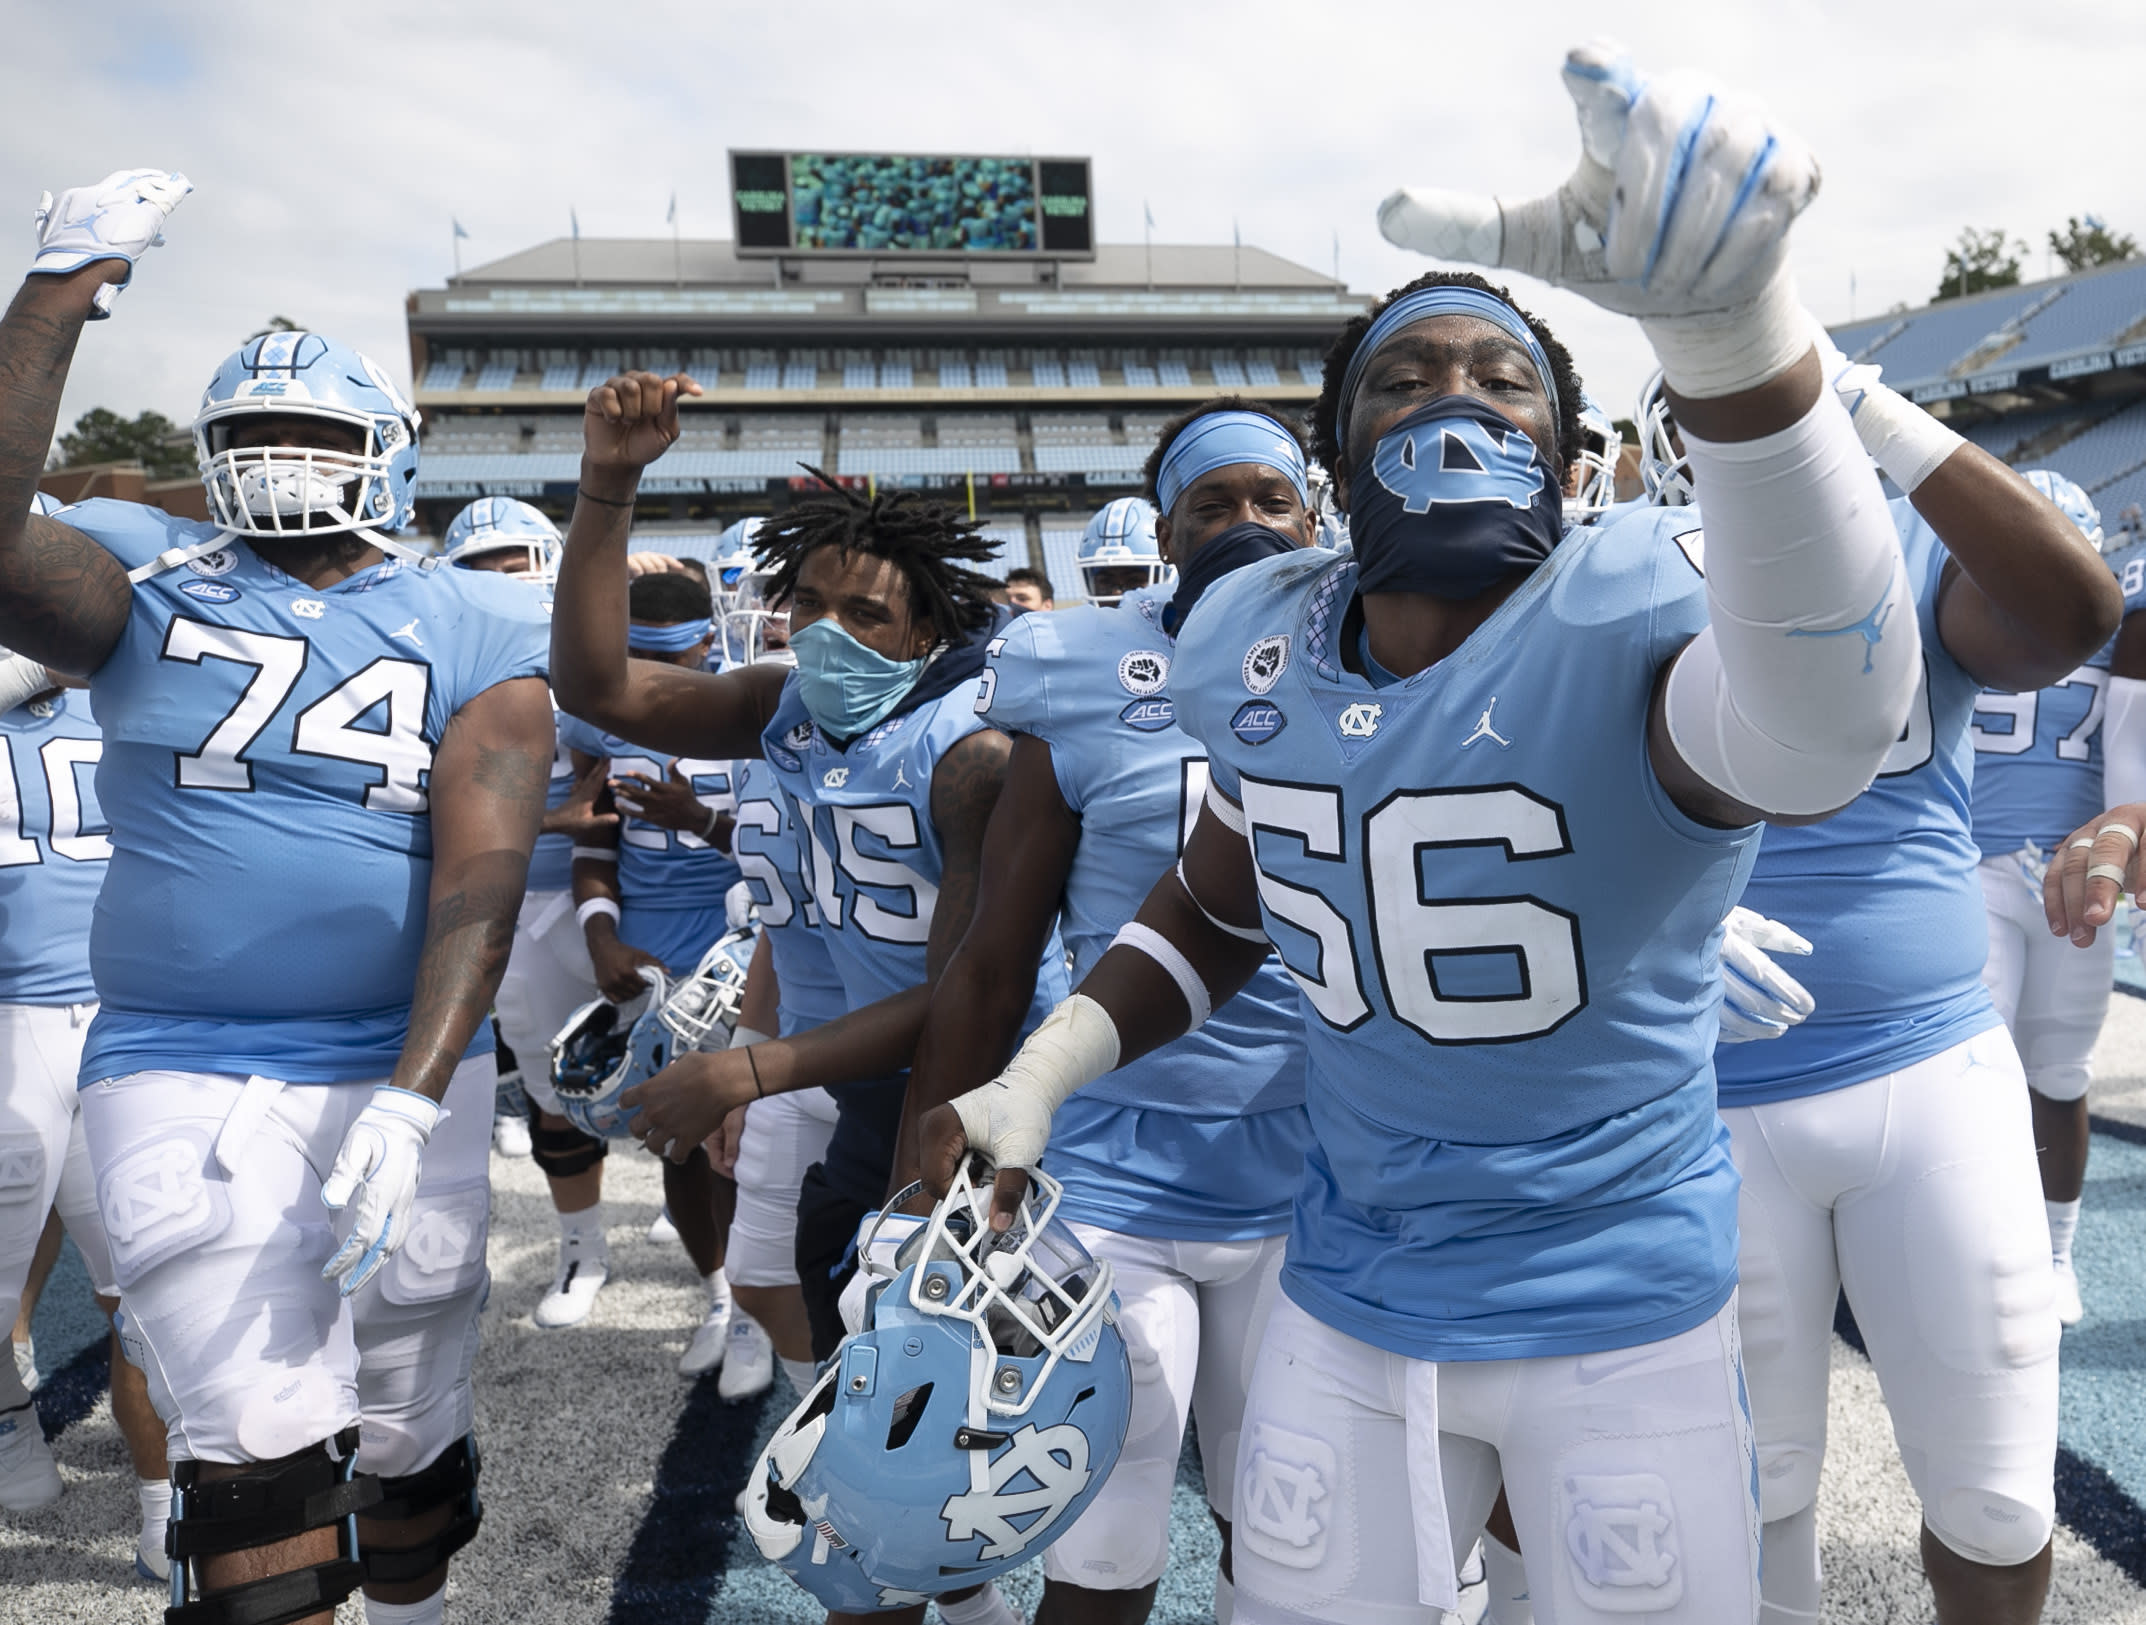 North Carolina's Tomari Fox (56) and his teammates celebrate their victory over Syracuse on Saturday, Sept. 12, 2020, in Chapel Hill, N.C.(Robert Willett/The News & Observer via AP, Pool)